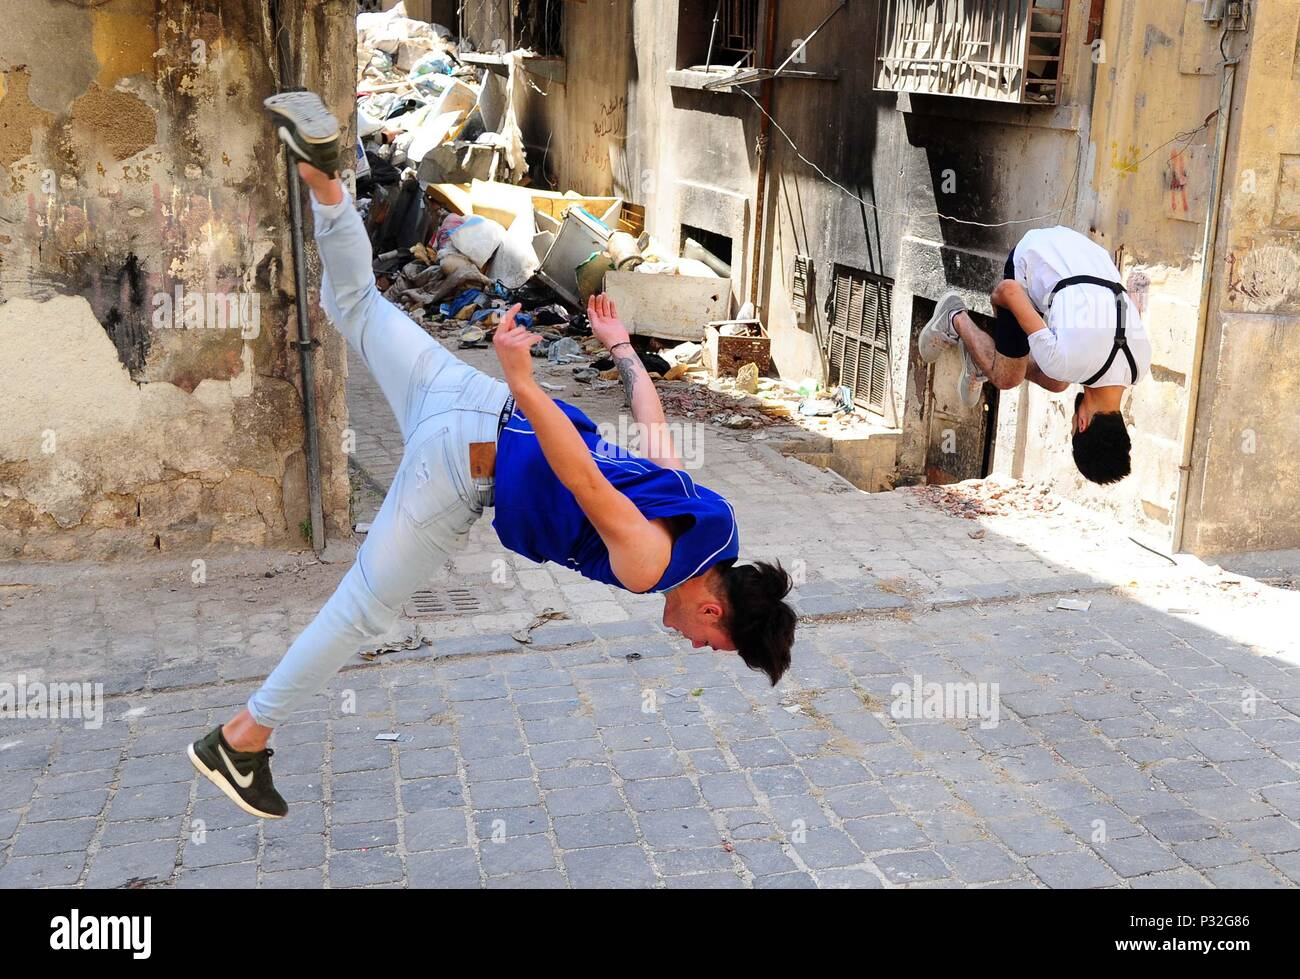 Aleppo, Syria. 8th June, 2018. Young Syrian parkour players perform front and backflips in the largely-damaged part of Aleppo city, northern Syria, on June 8, 2018. With their breathtaking flips and jumping stunts, a group of young Syrians are bringing life back to the destroyed parts of Aleppo city with their electrifying Parkour performance. TO GO WITH Feature: Young Syrians revive life in old Aleppo's ruins with electrifying Parkour performance. Credit: Ammar Safarjalani/Xinhua/Alamy Live News - Stock Image